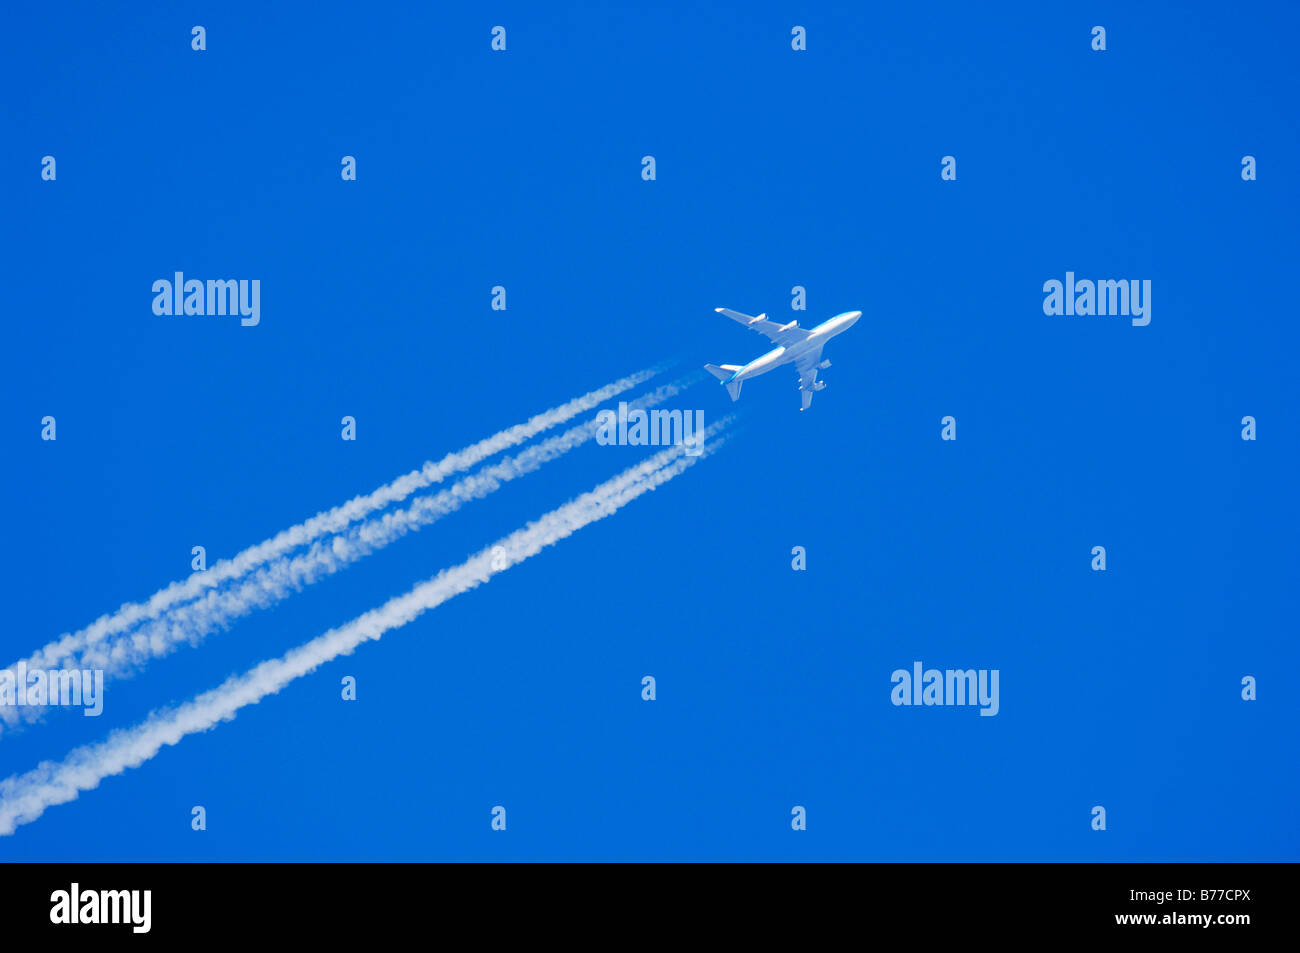 Aeroplane with condensation trail - Stock Image